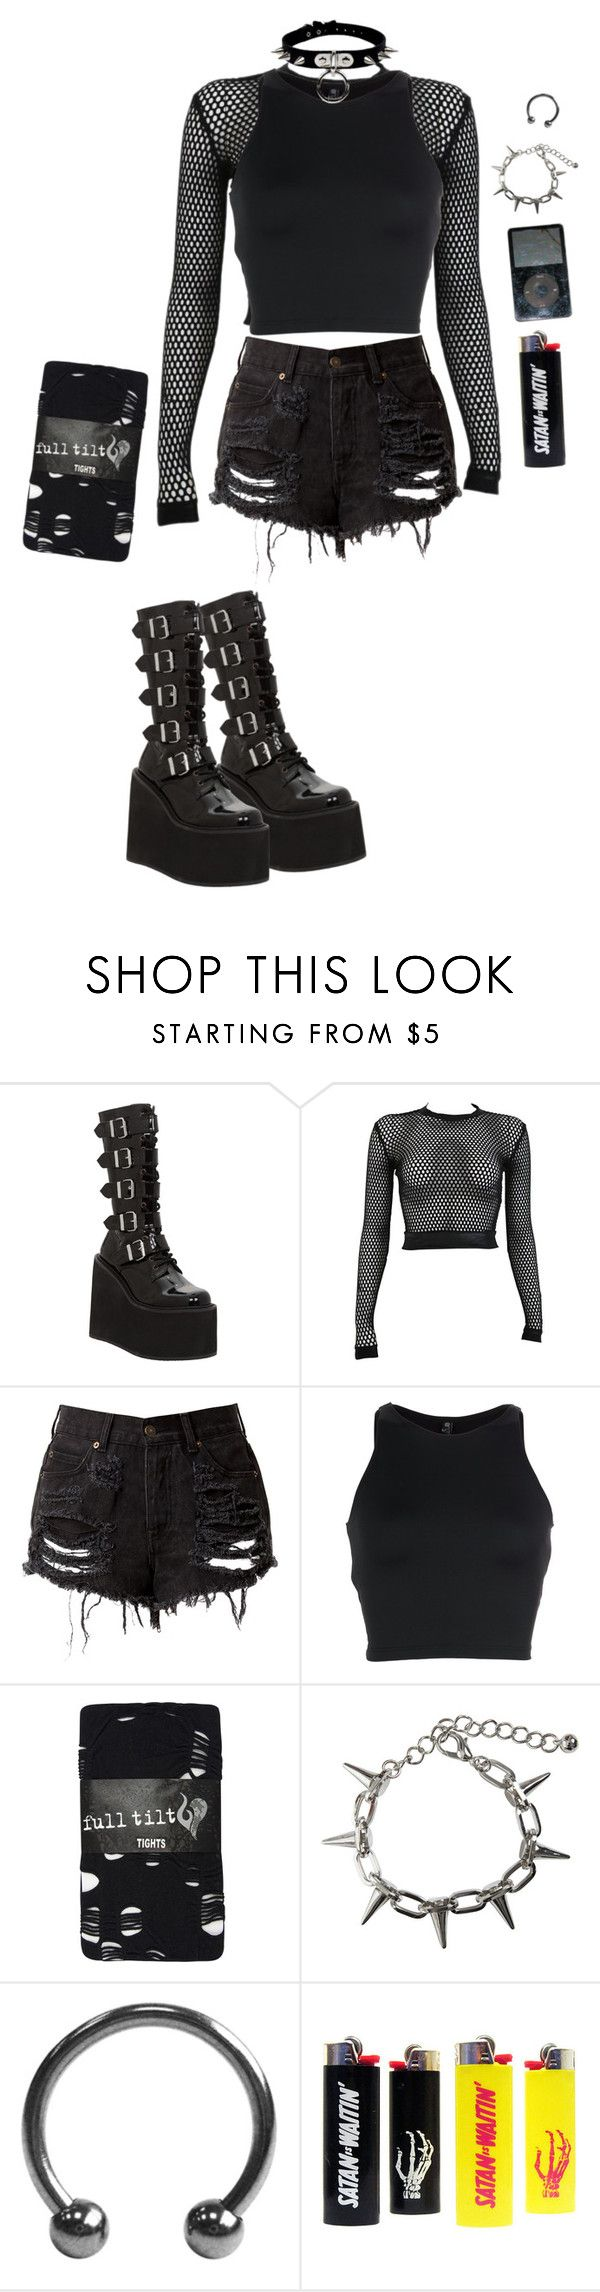 """""""Fuhre Mich"""" by sarabeanxo ❤ liked on Polyvore featuring Demonia, PAM, Onzie, Full Tilt and Bardot"""